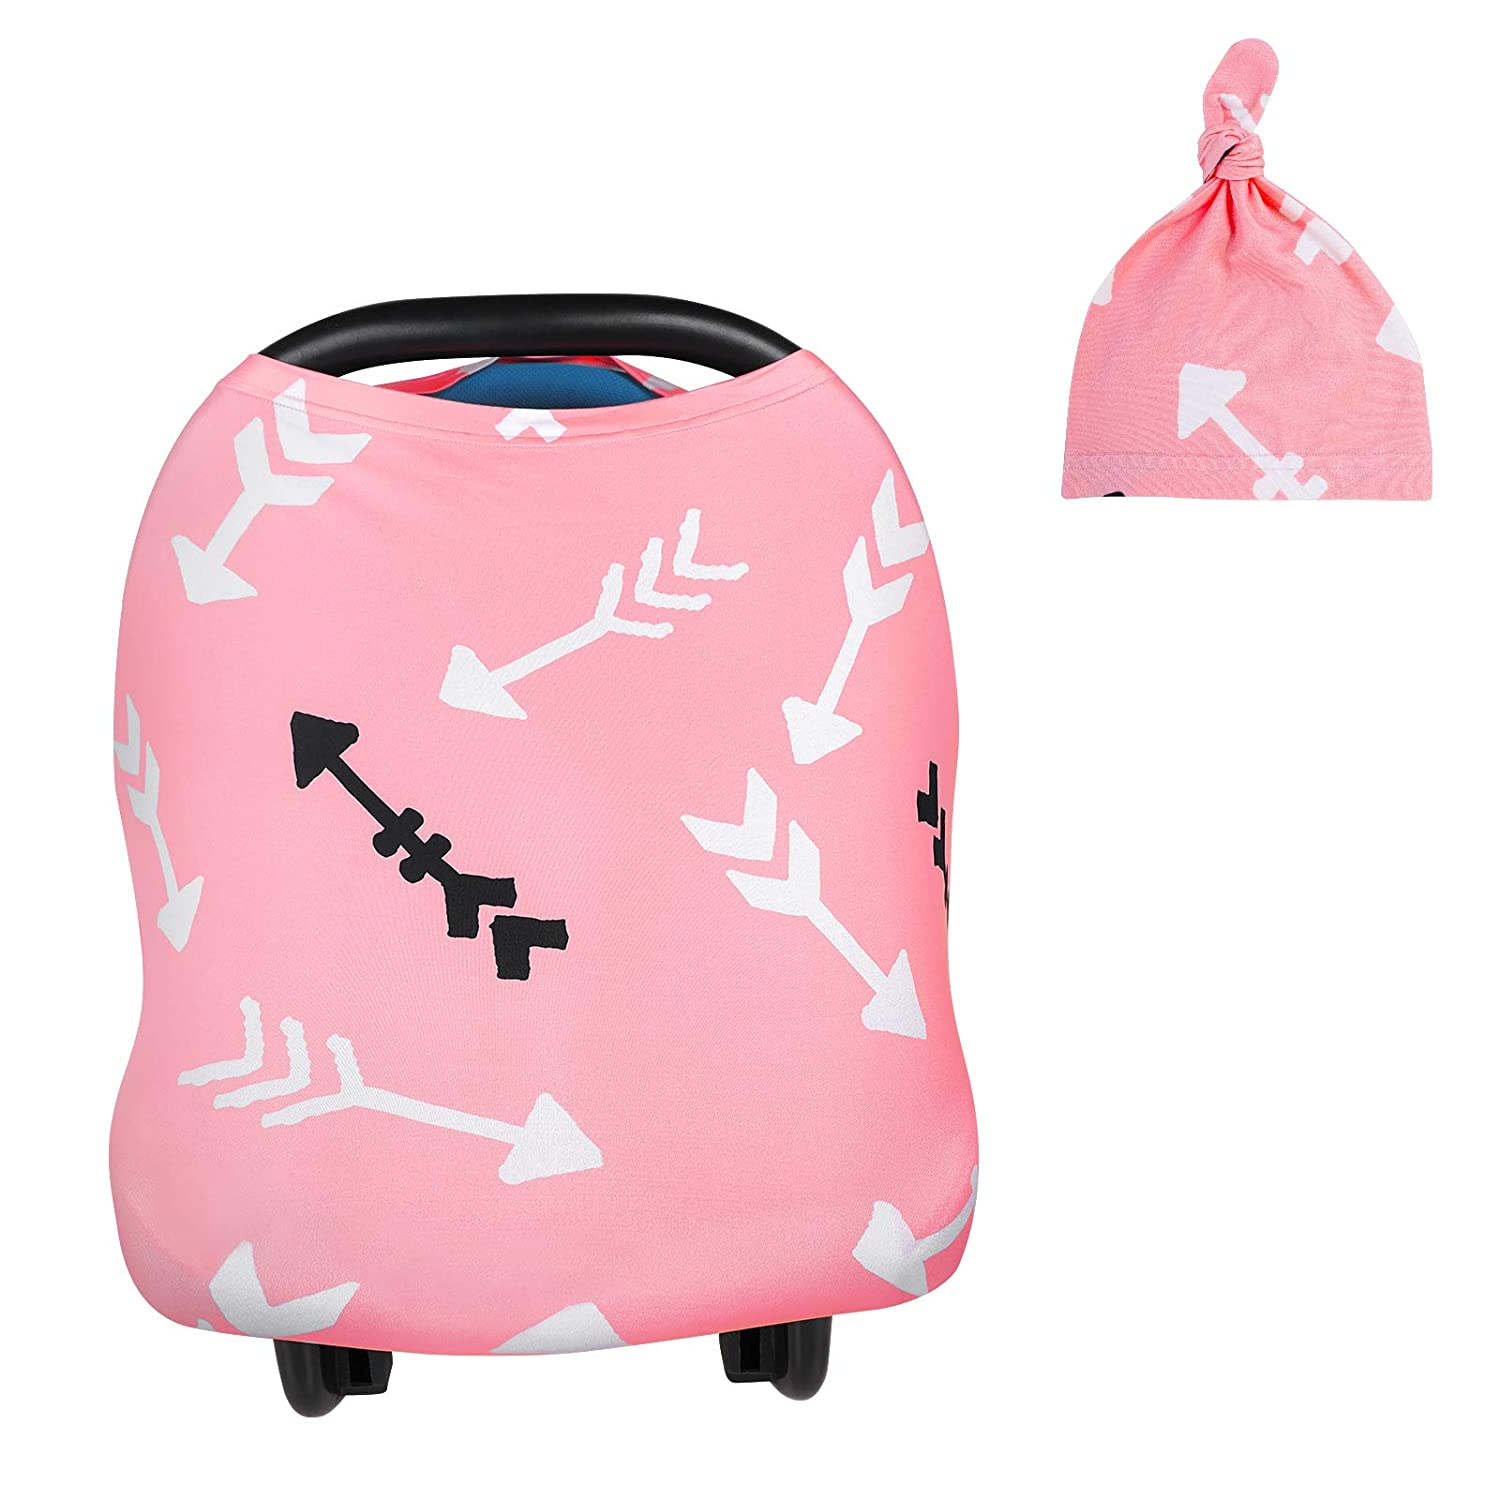 Nursing Cover Breastfeeding with Infa Hat Breathable Soft Charlotte Mall Detroit Mall